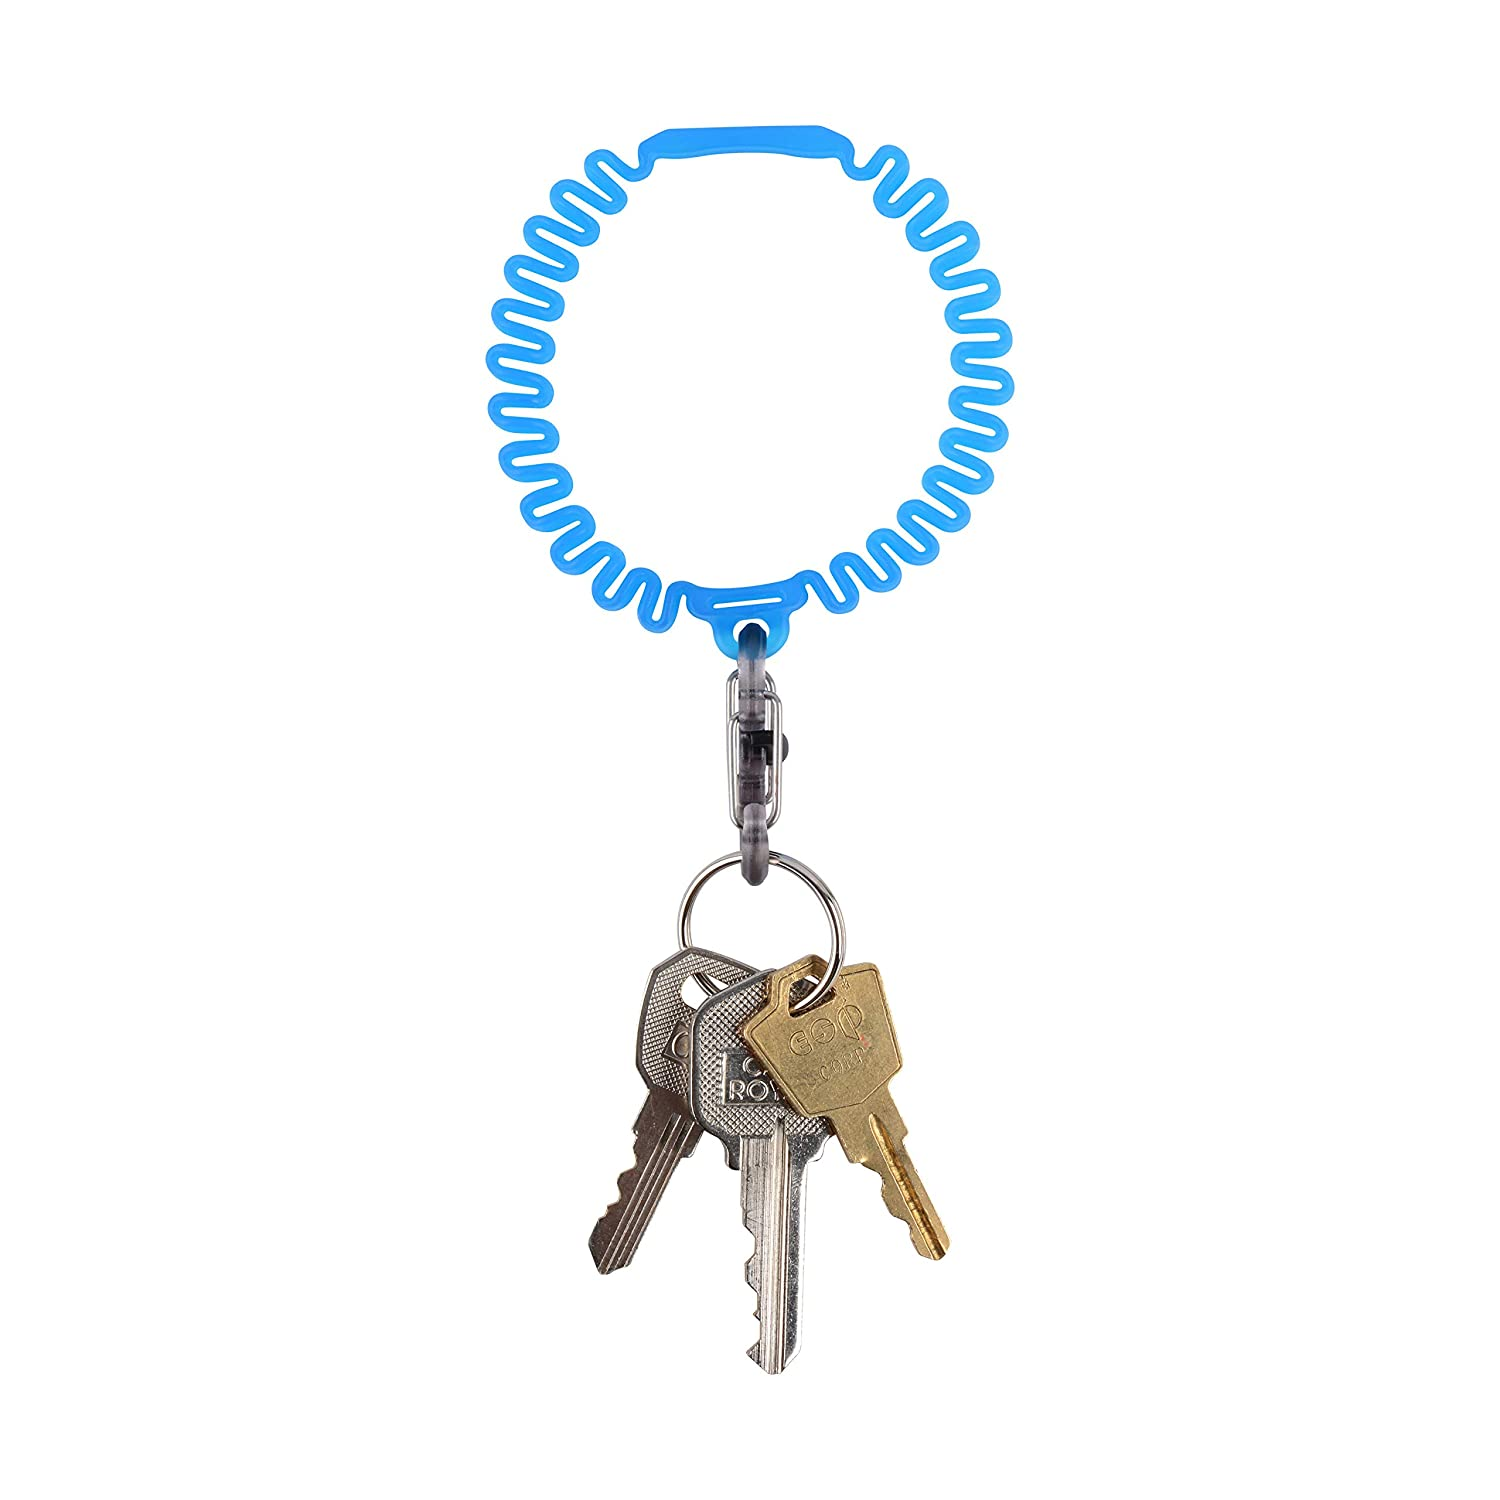 Blue Nite Ize Key Band-It Stretch Wristband Key Chain With S-Biner Clip